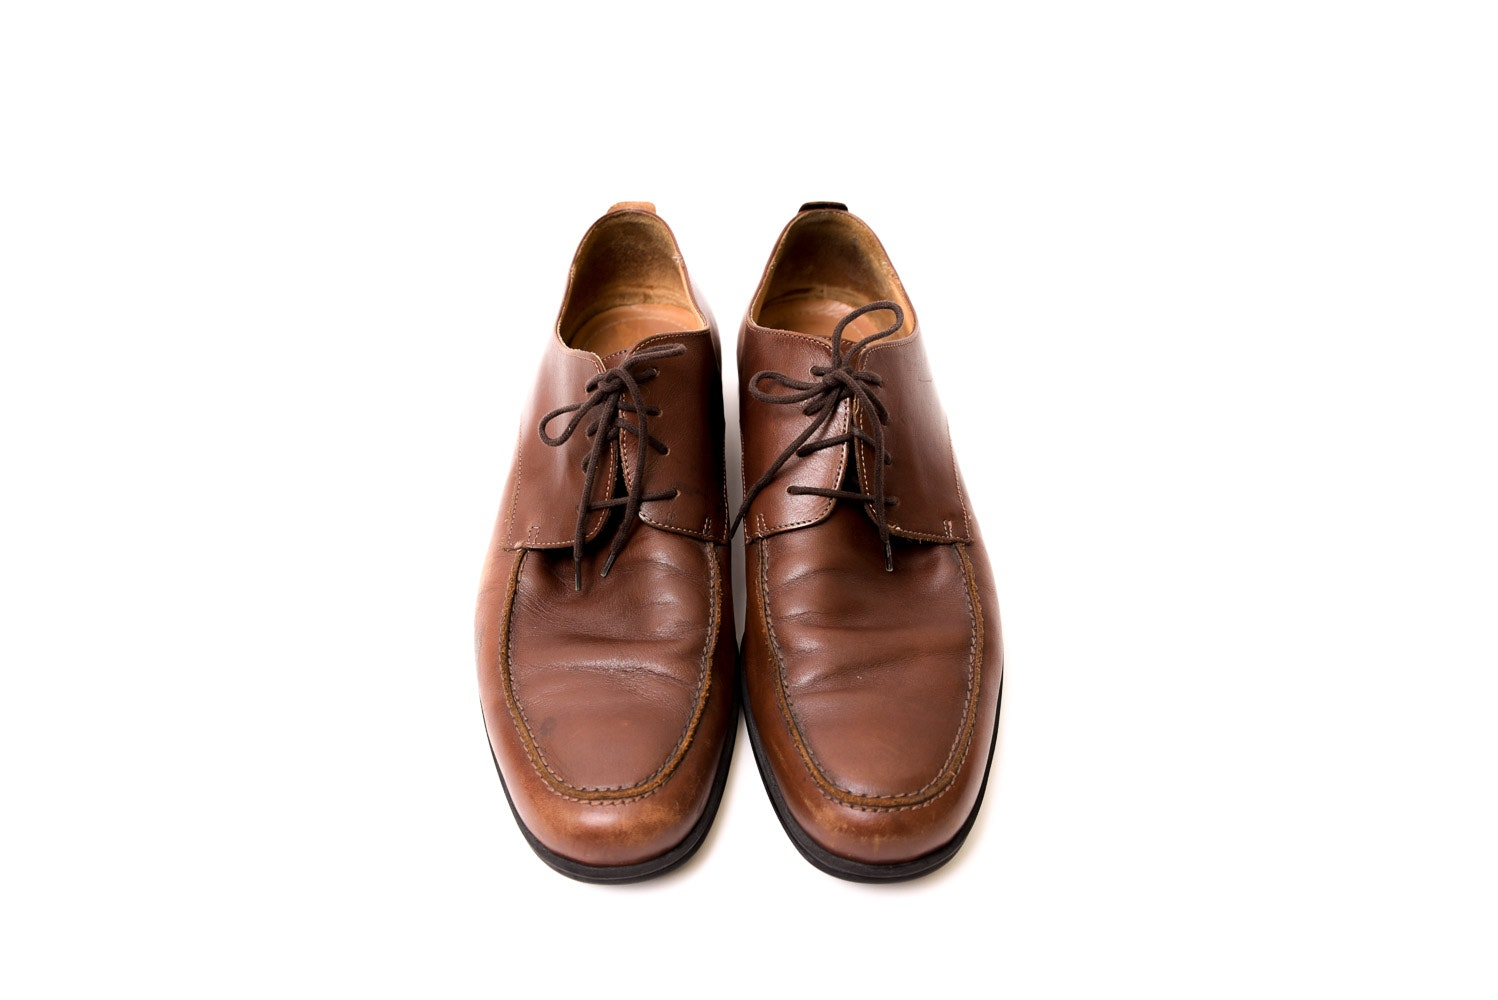 What to wear with Brown coach shoes?